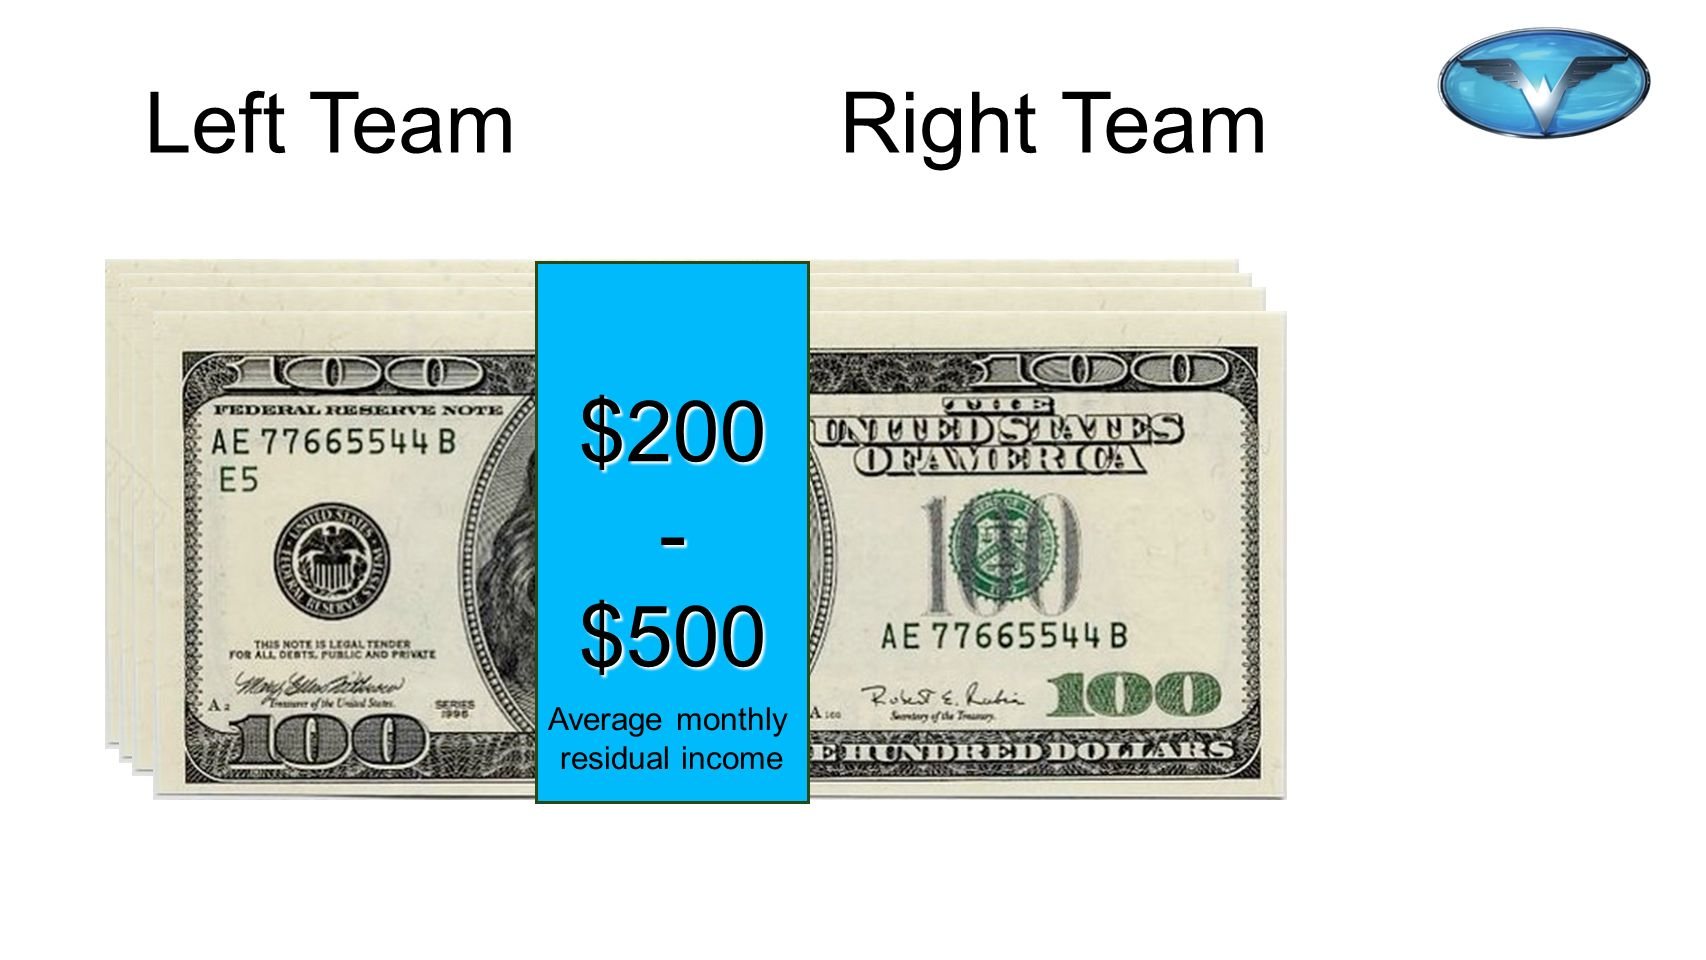 30 30 Left Team Right Team Sales Sales $200 - $500 Average monthly